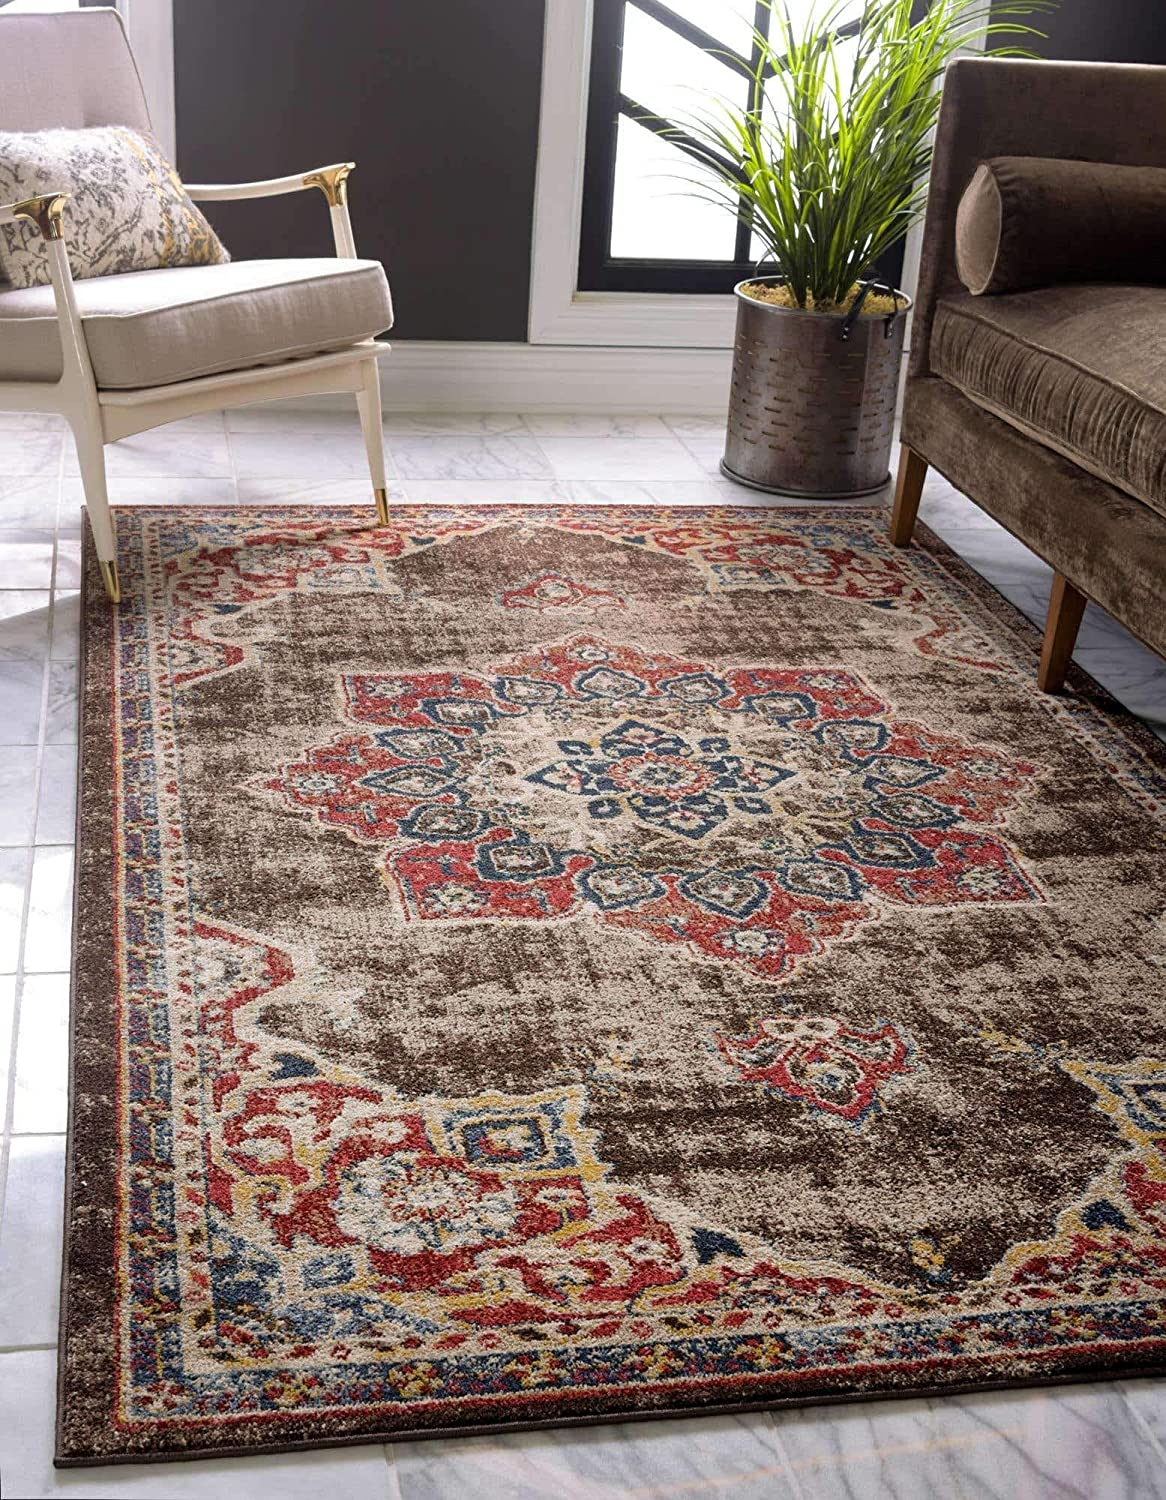 Unique Loom Utopia Collection Traditional Medallion Vintage Warm Tones Chocolate Brown Area Rug (4' 0 x 6' 0)